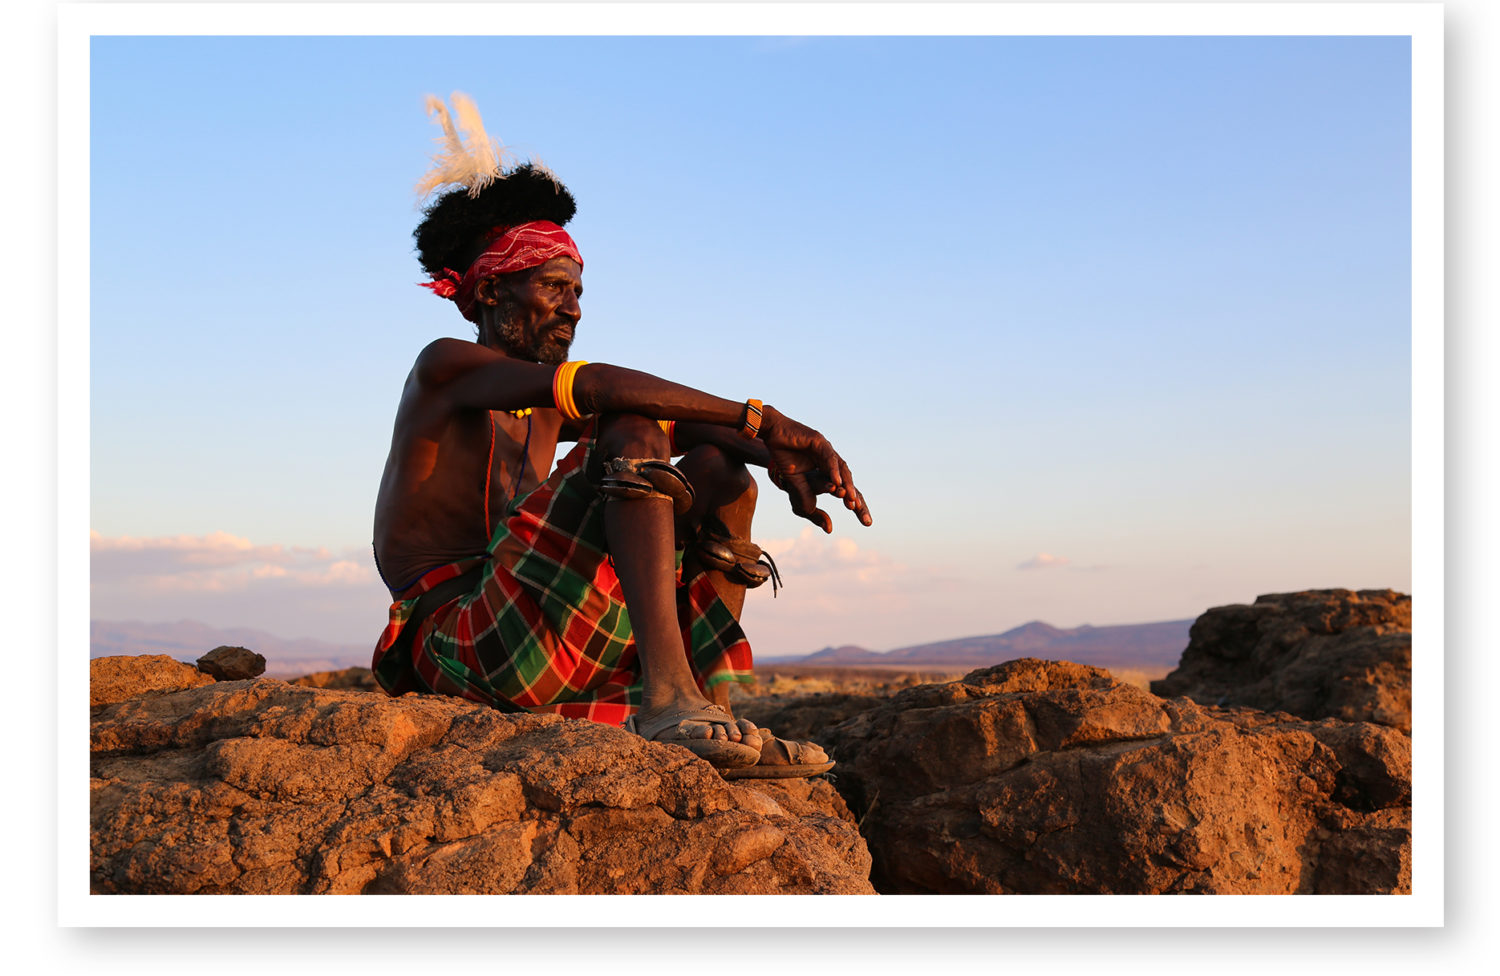 Circum Lisa Brighton, Michigan Chapter, caught this pensive shot of a tribesman in Kenya. More of Lisa's spectacular tribal photos will run in the next issue of The Log.